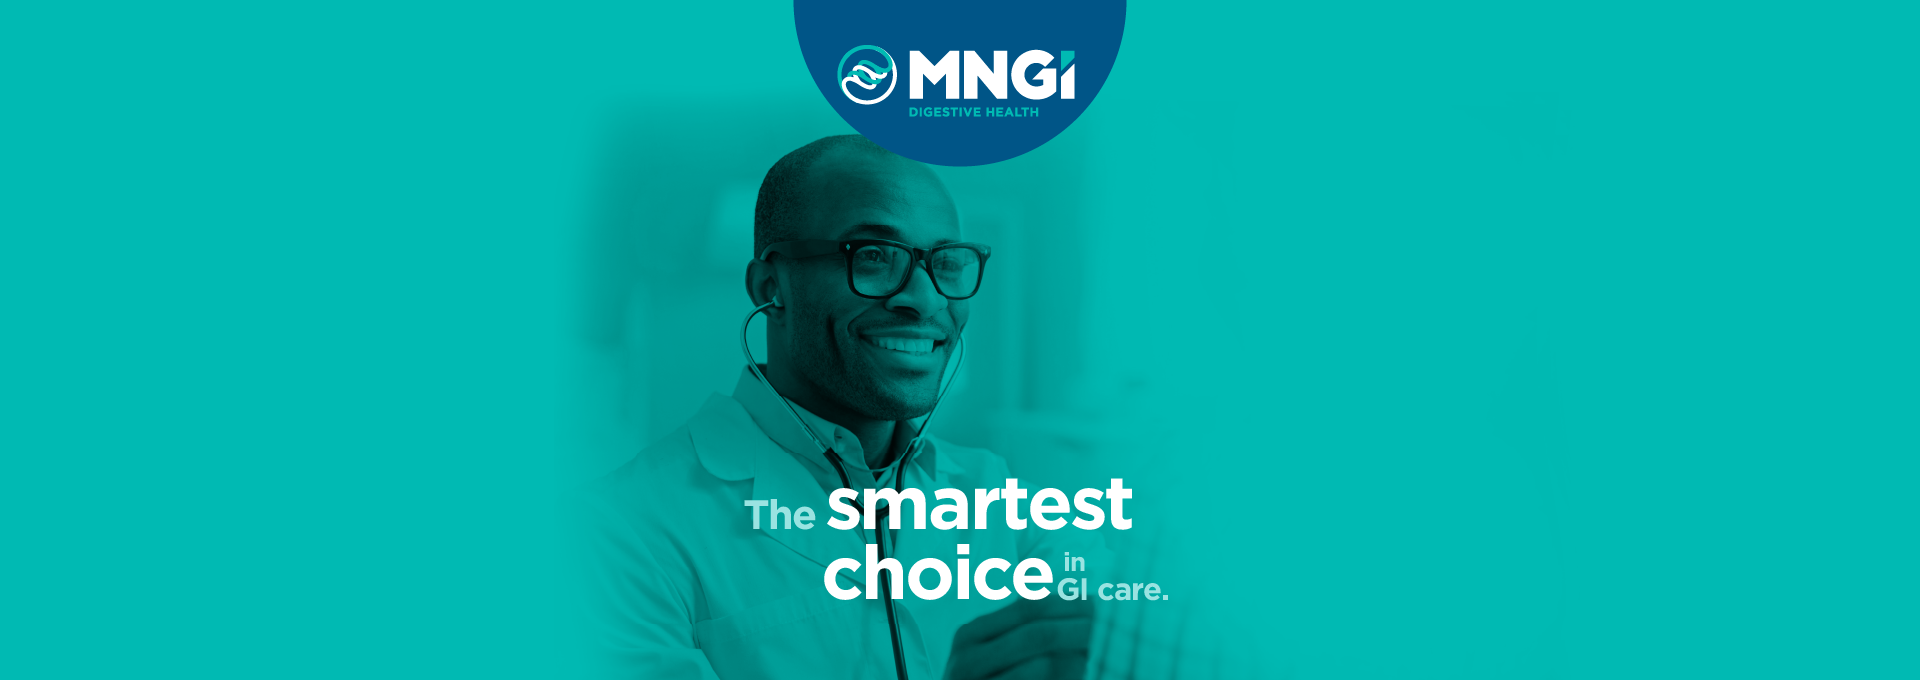 The Smartest Choice in GI Care